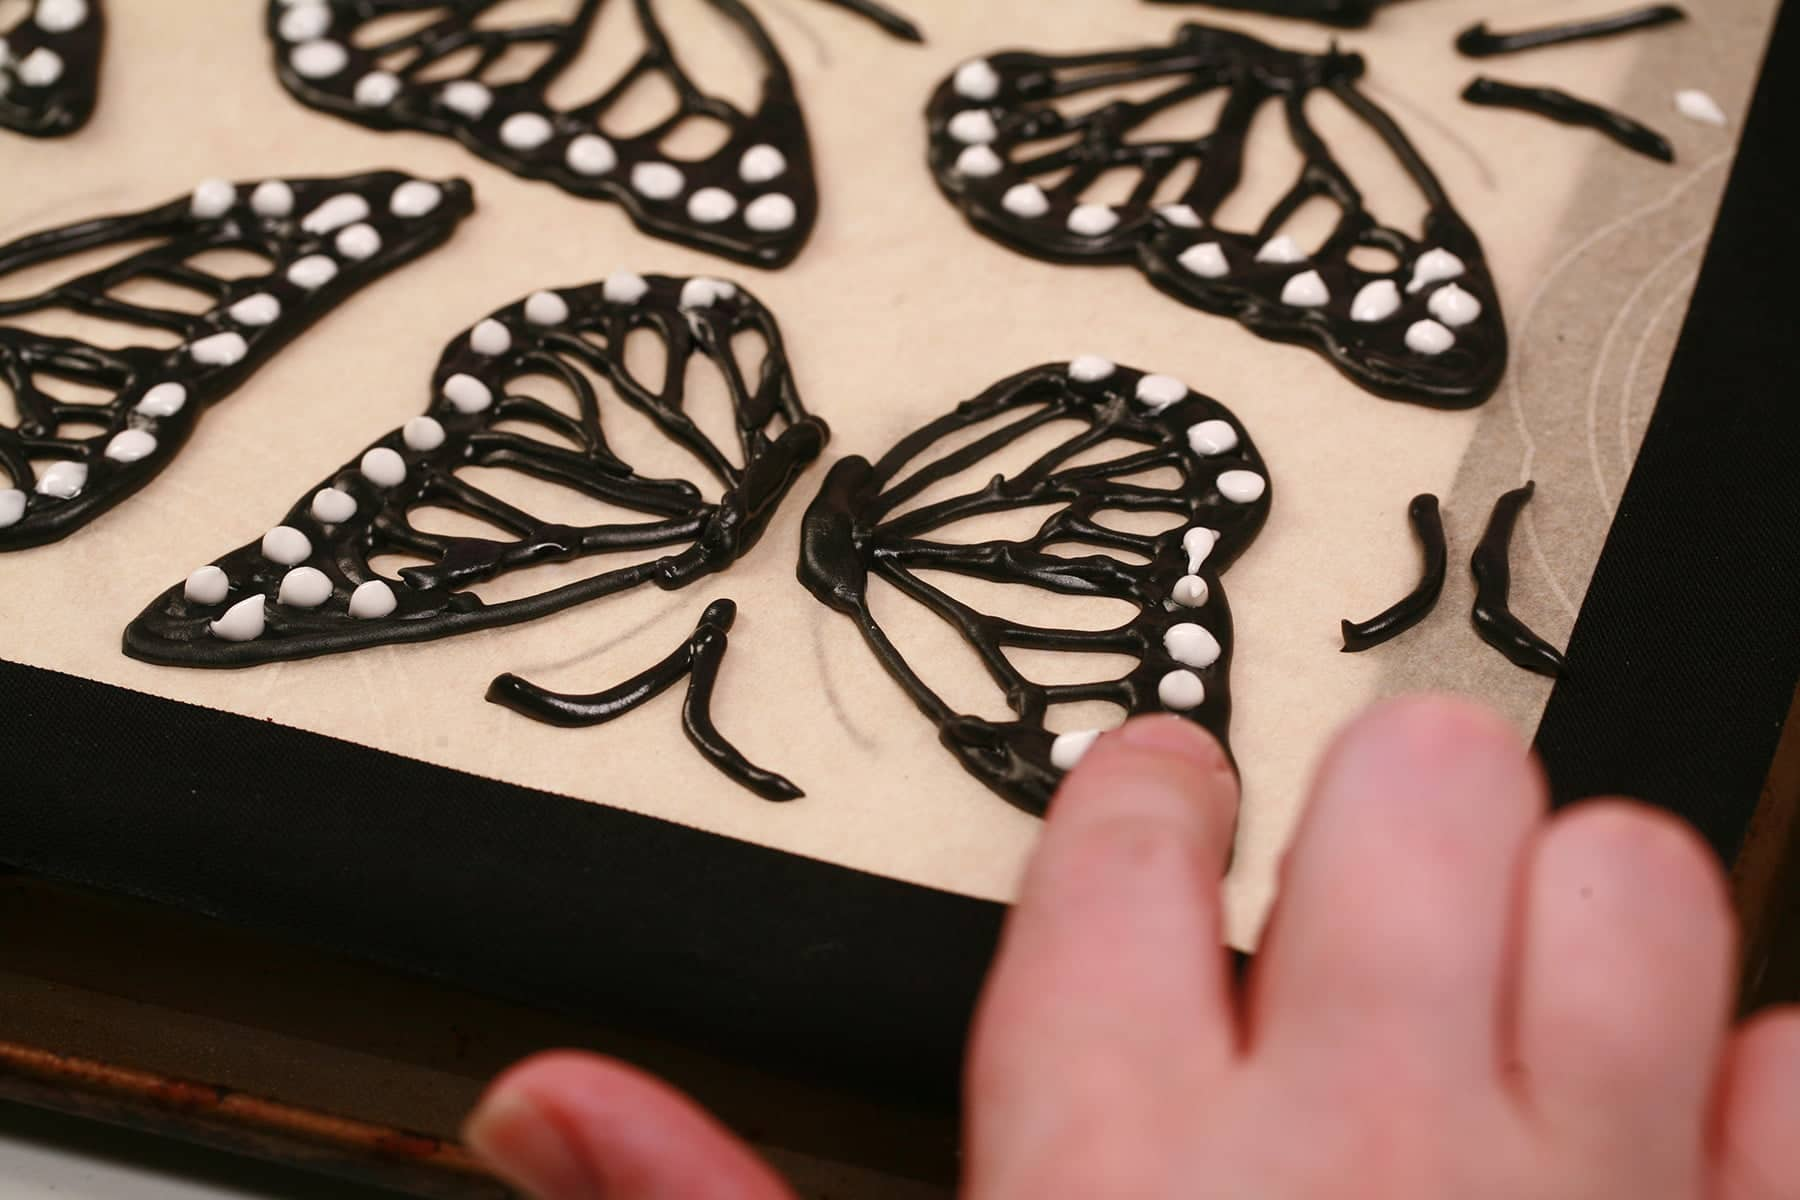 A finger is shown gently tapping down the peaks of white royal icing on a butterfly wing.